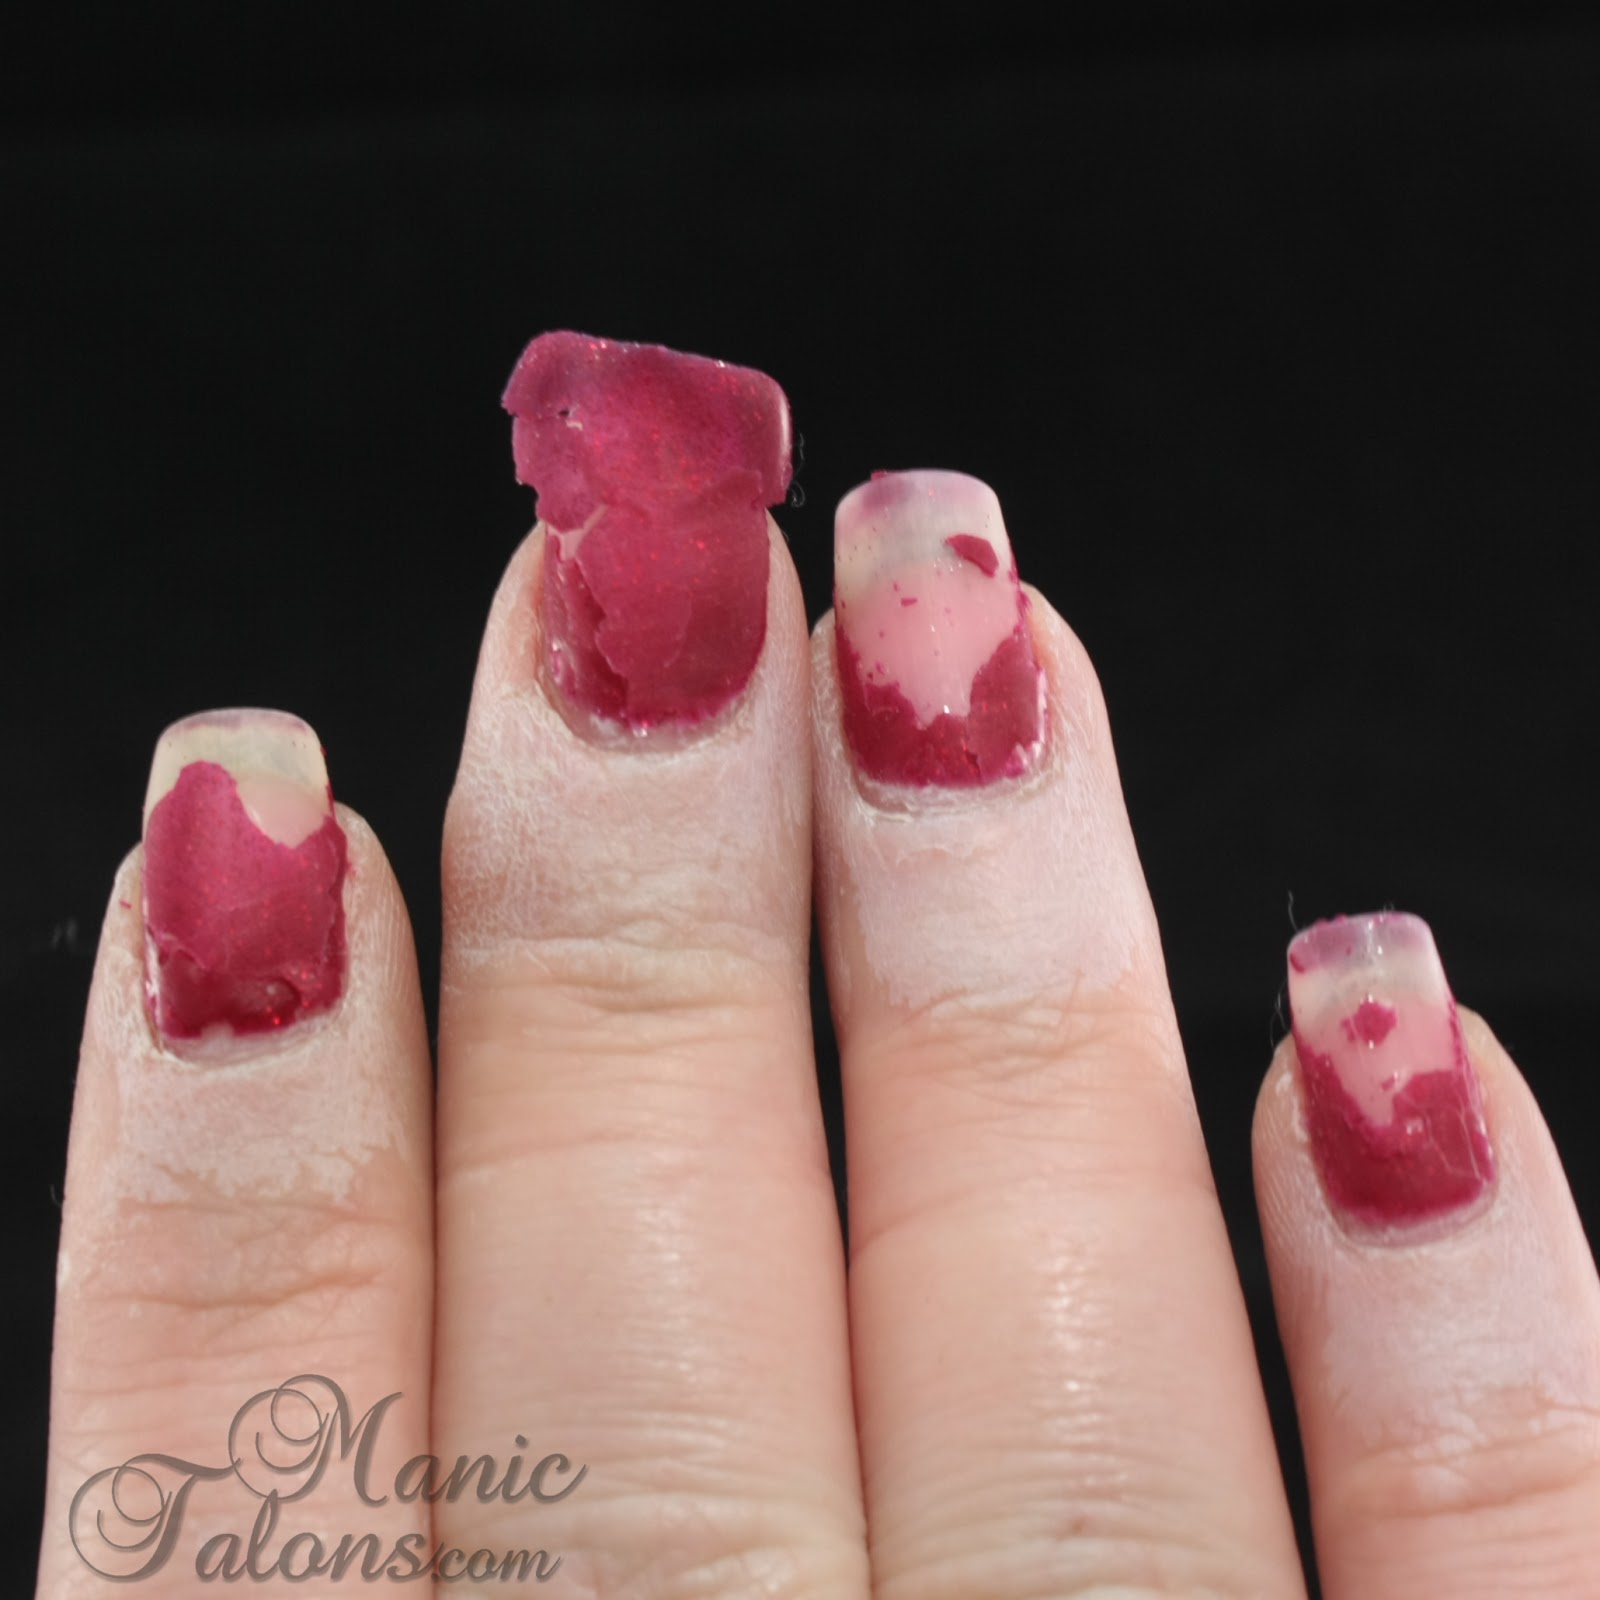 Manic Talons Nail Design: Gelaze by China Glaze: Review and Wear Test